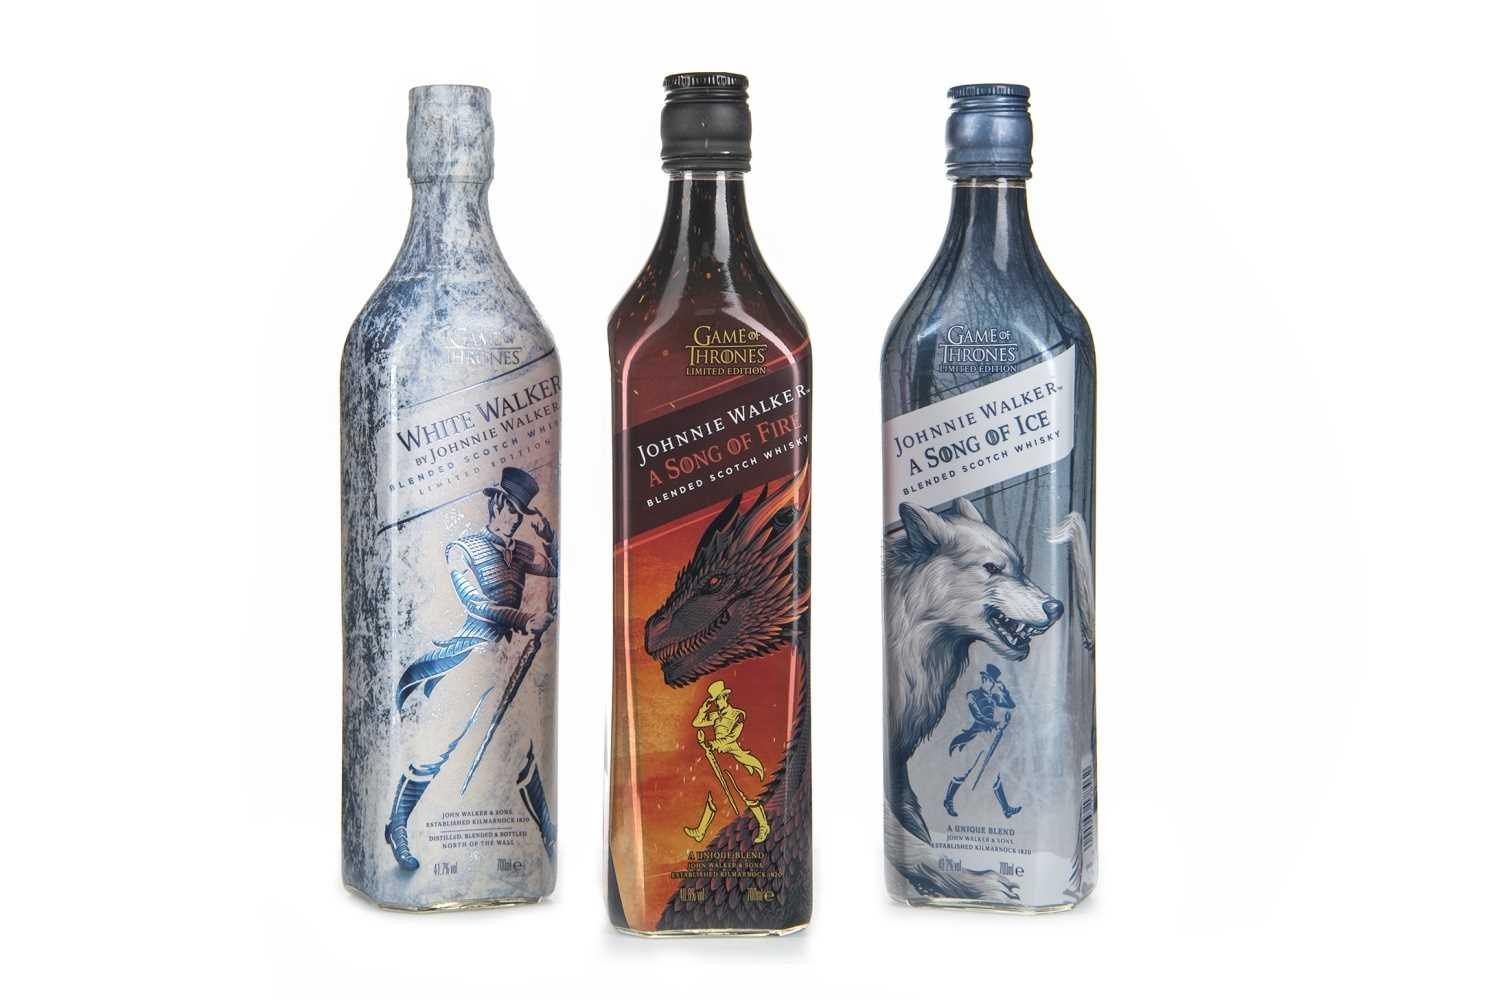 Lot 418 - JOHNNIE WALKER A SONG OF FIRE, A SONG OF ICE AND WHITE WALKER